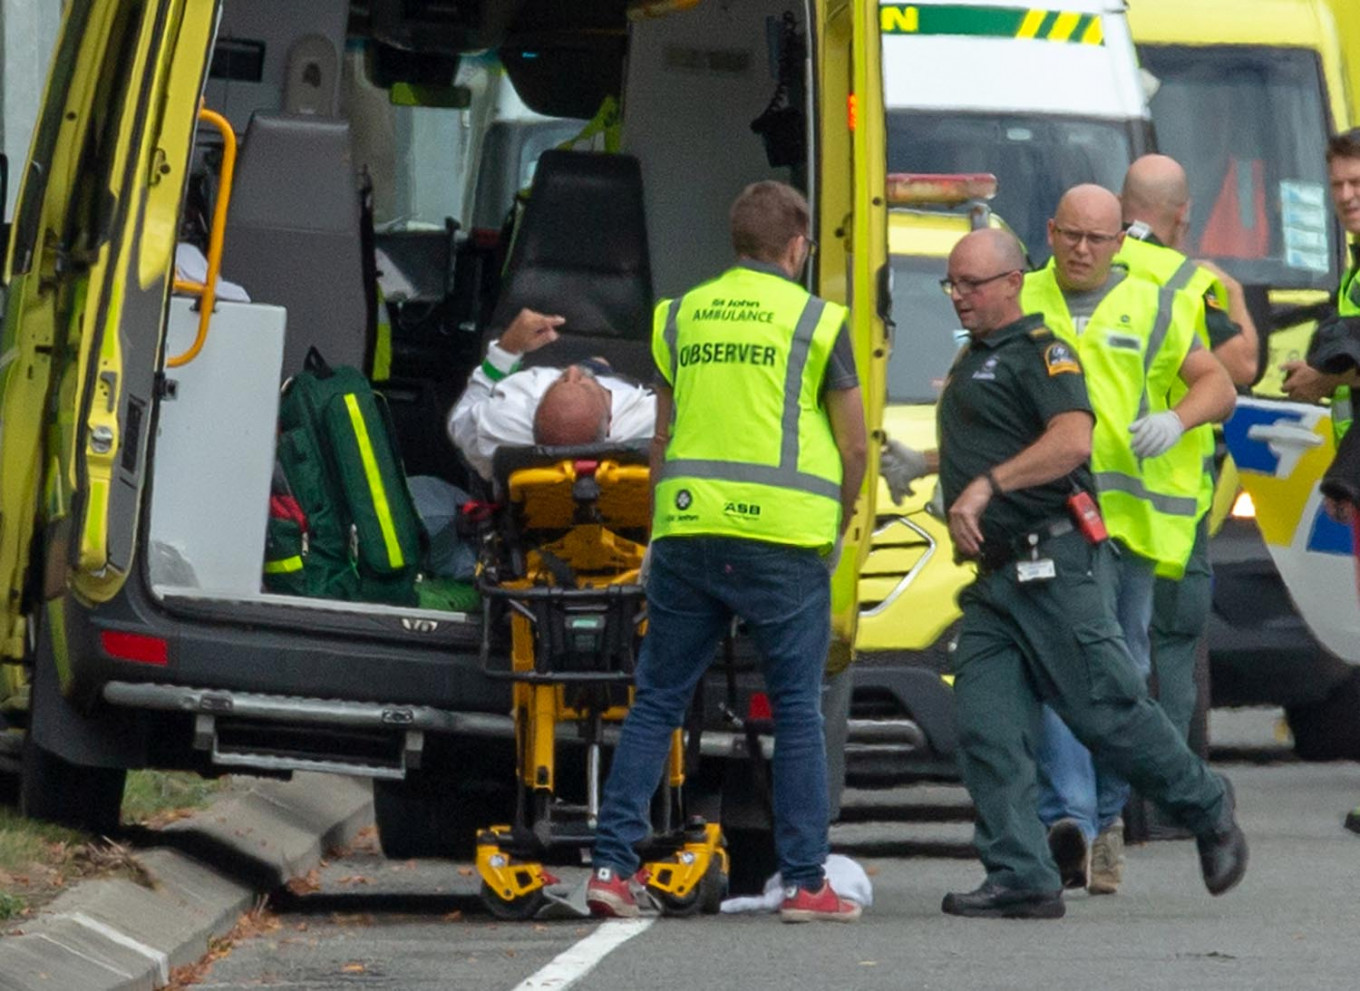 Six Indonesians were inside attacked New Zealand mosque: Foreign